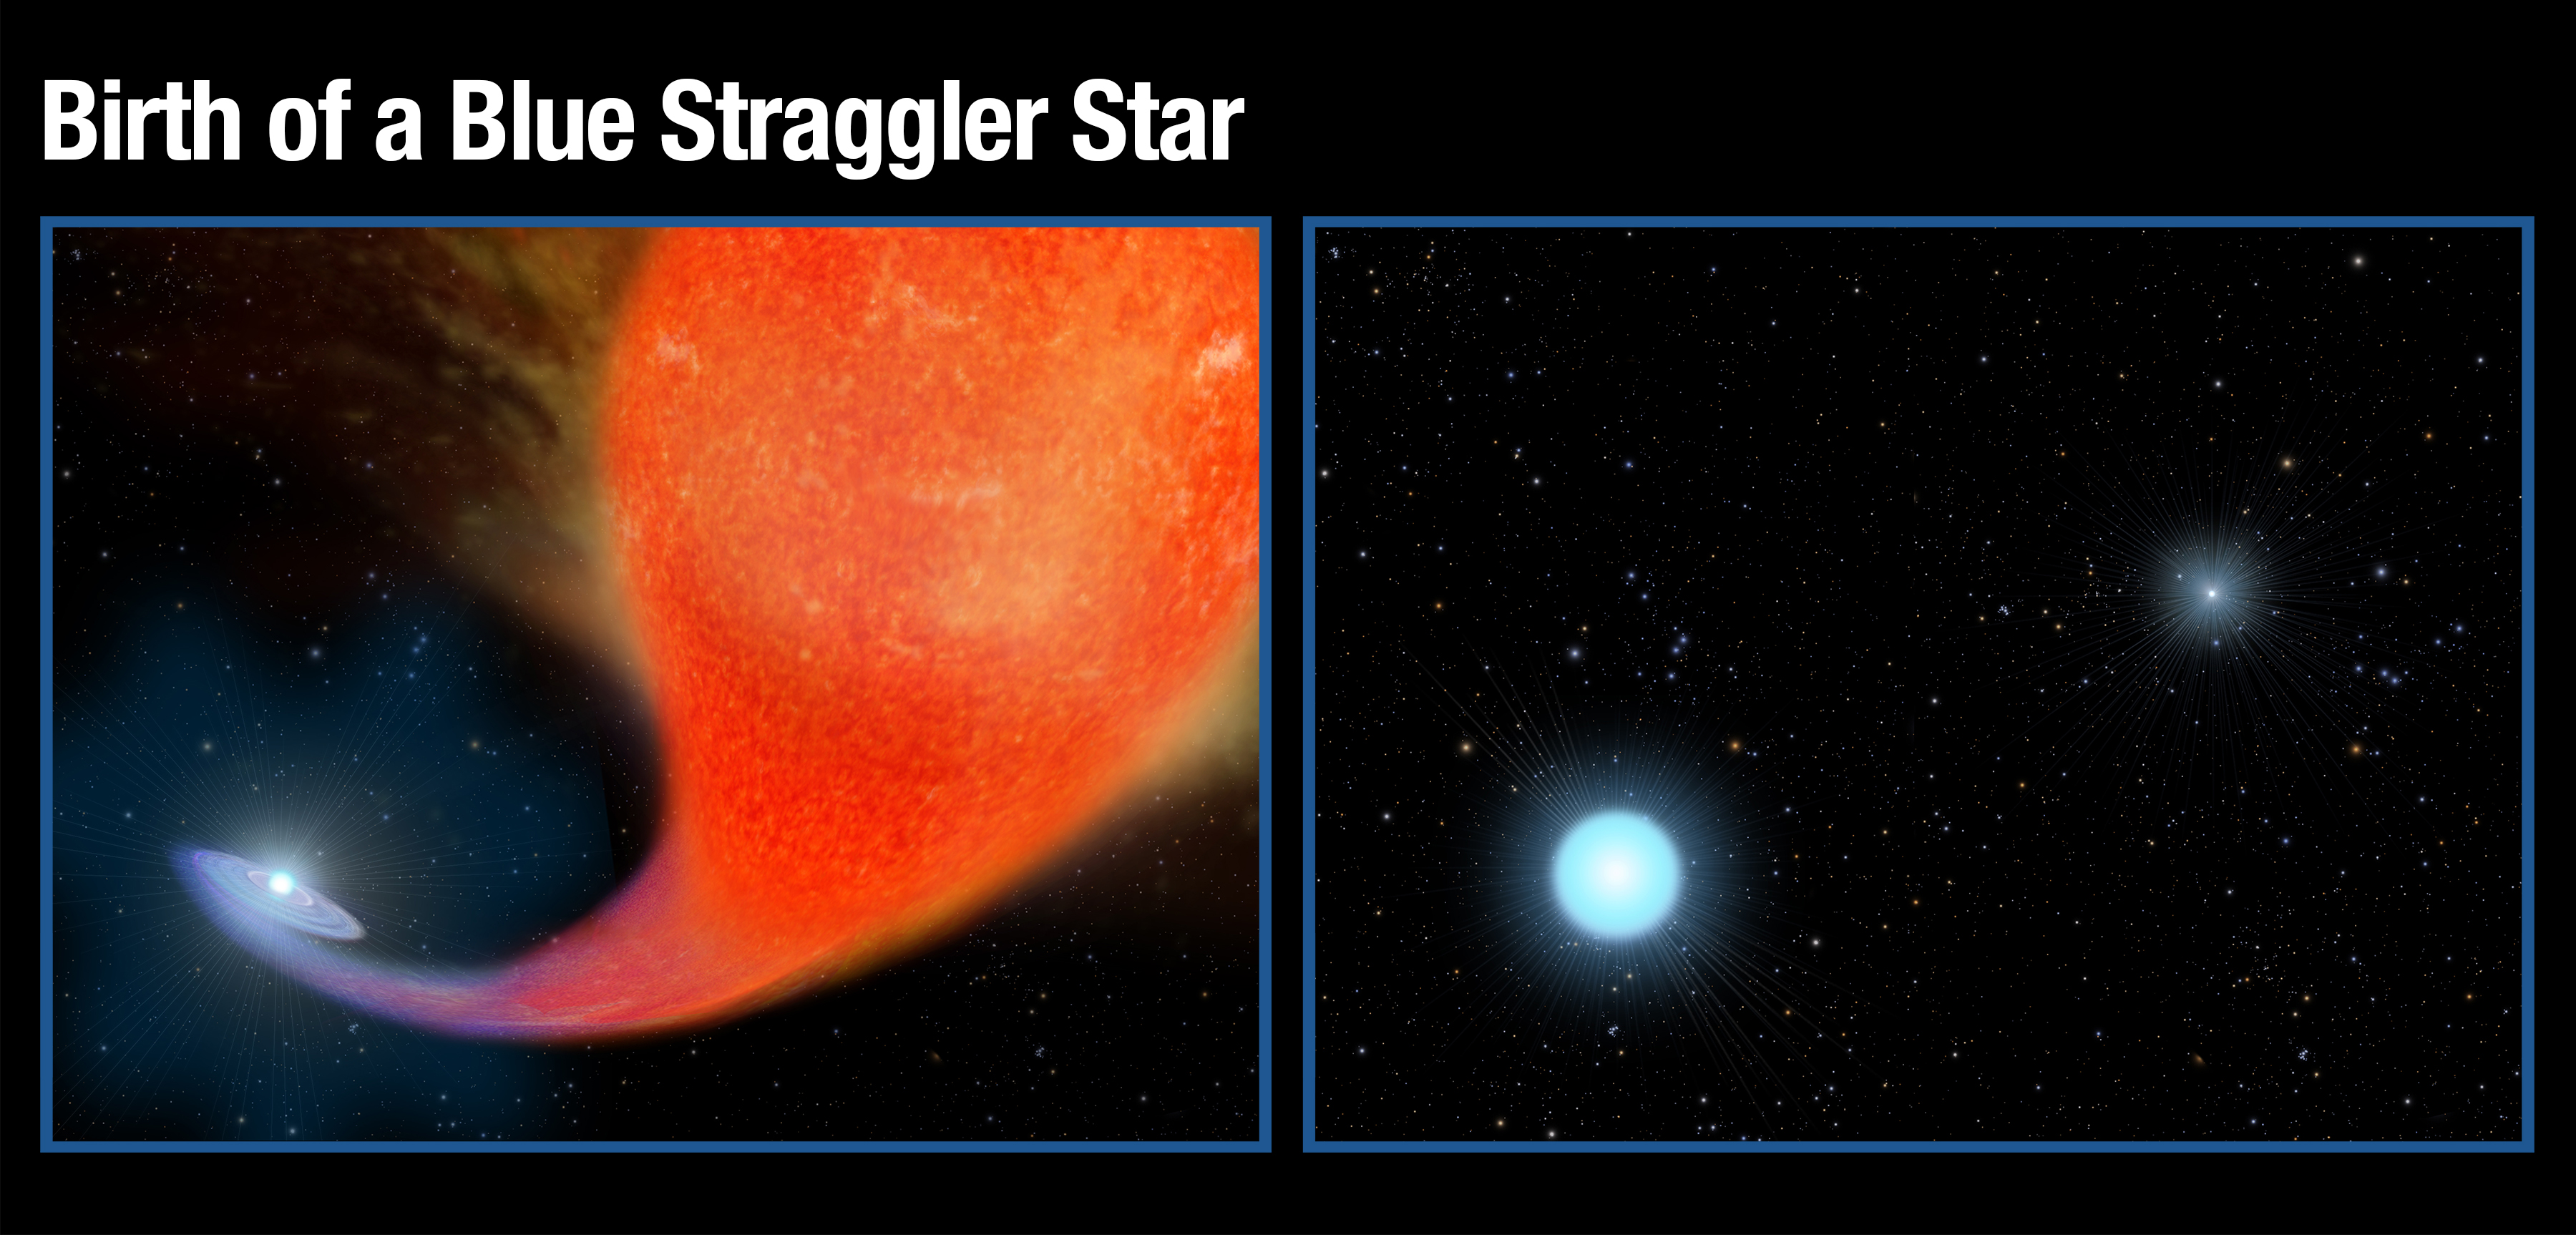 Left: A normal star in a binary system gravitationally pulls in matter from an aging companion star that has swelled to a bloated red giant that has expanded to a few hundred times of its original size. Right: After a couple hundred million years the red giant star has burned out and collapsed to the white dwarf that shines intensely in ultraviolet wavelengths. The companion star has bulked up on the hydrogen siphoned off of the red giant star to become much hotter, brighter and bluer than it was previously. Credit: NASA/ESA, A. Feild (STScI)